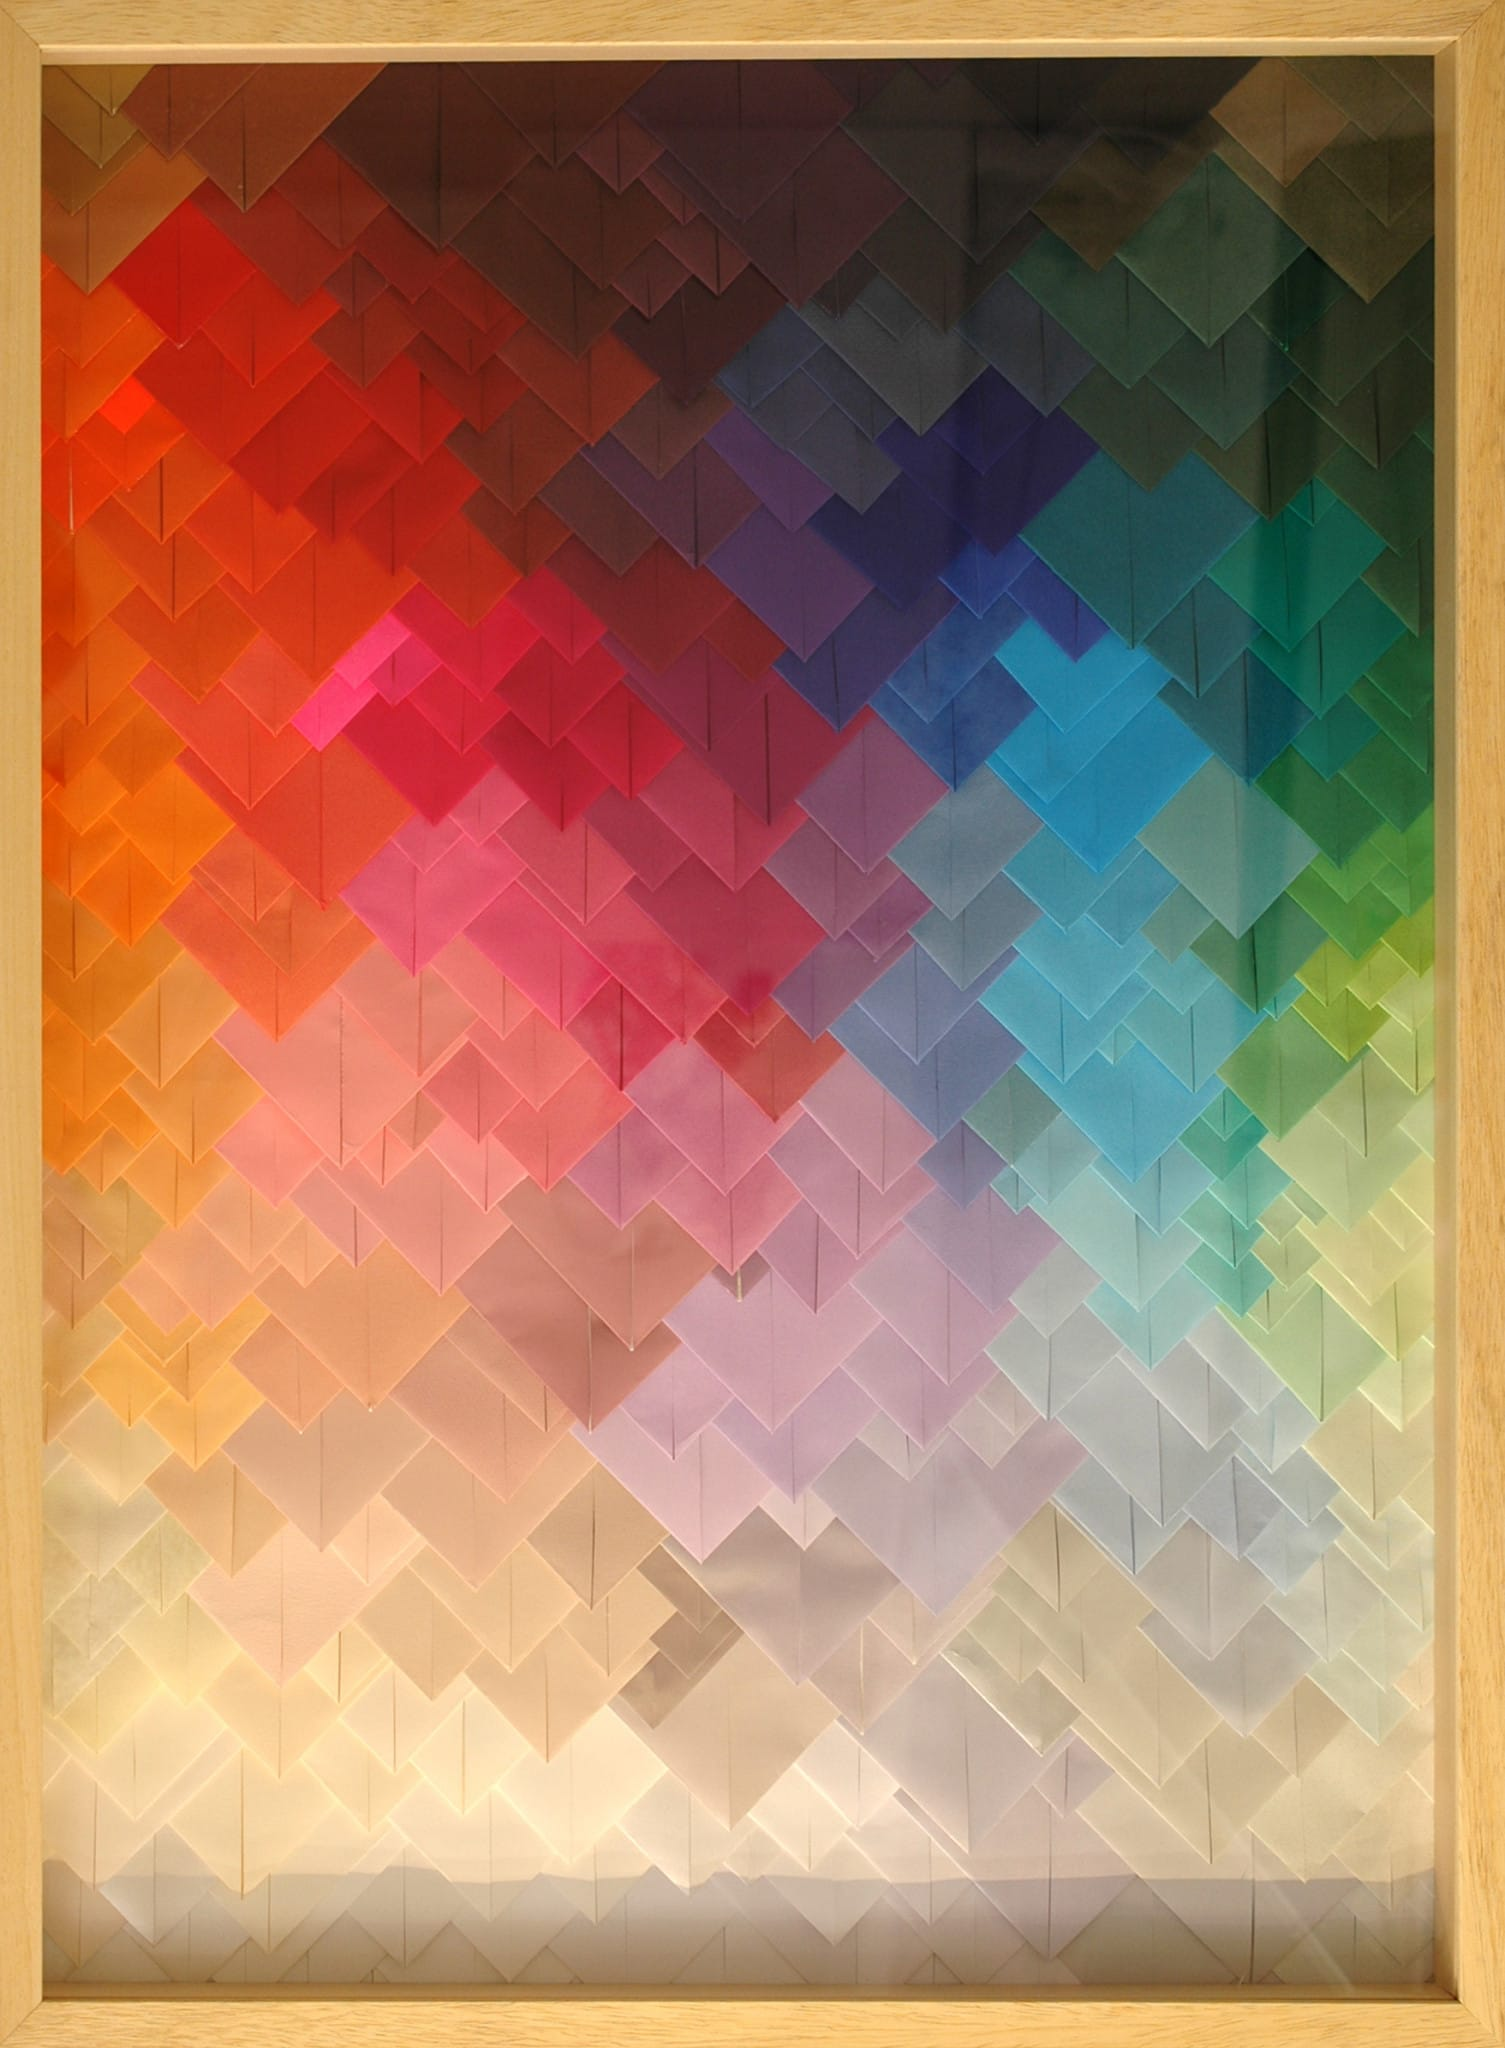 Galerie Art Jingle Maud Vantours Triangles #21 80 x 60 cm Encadrement